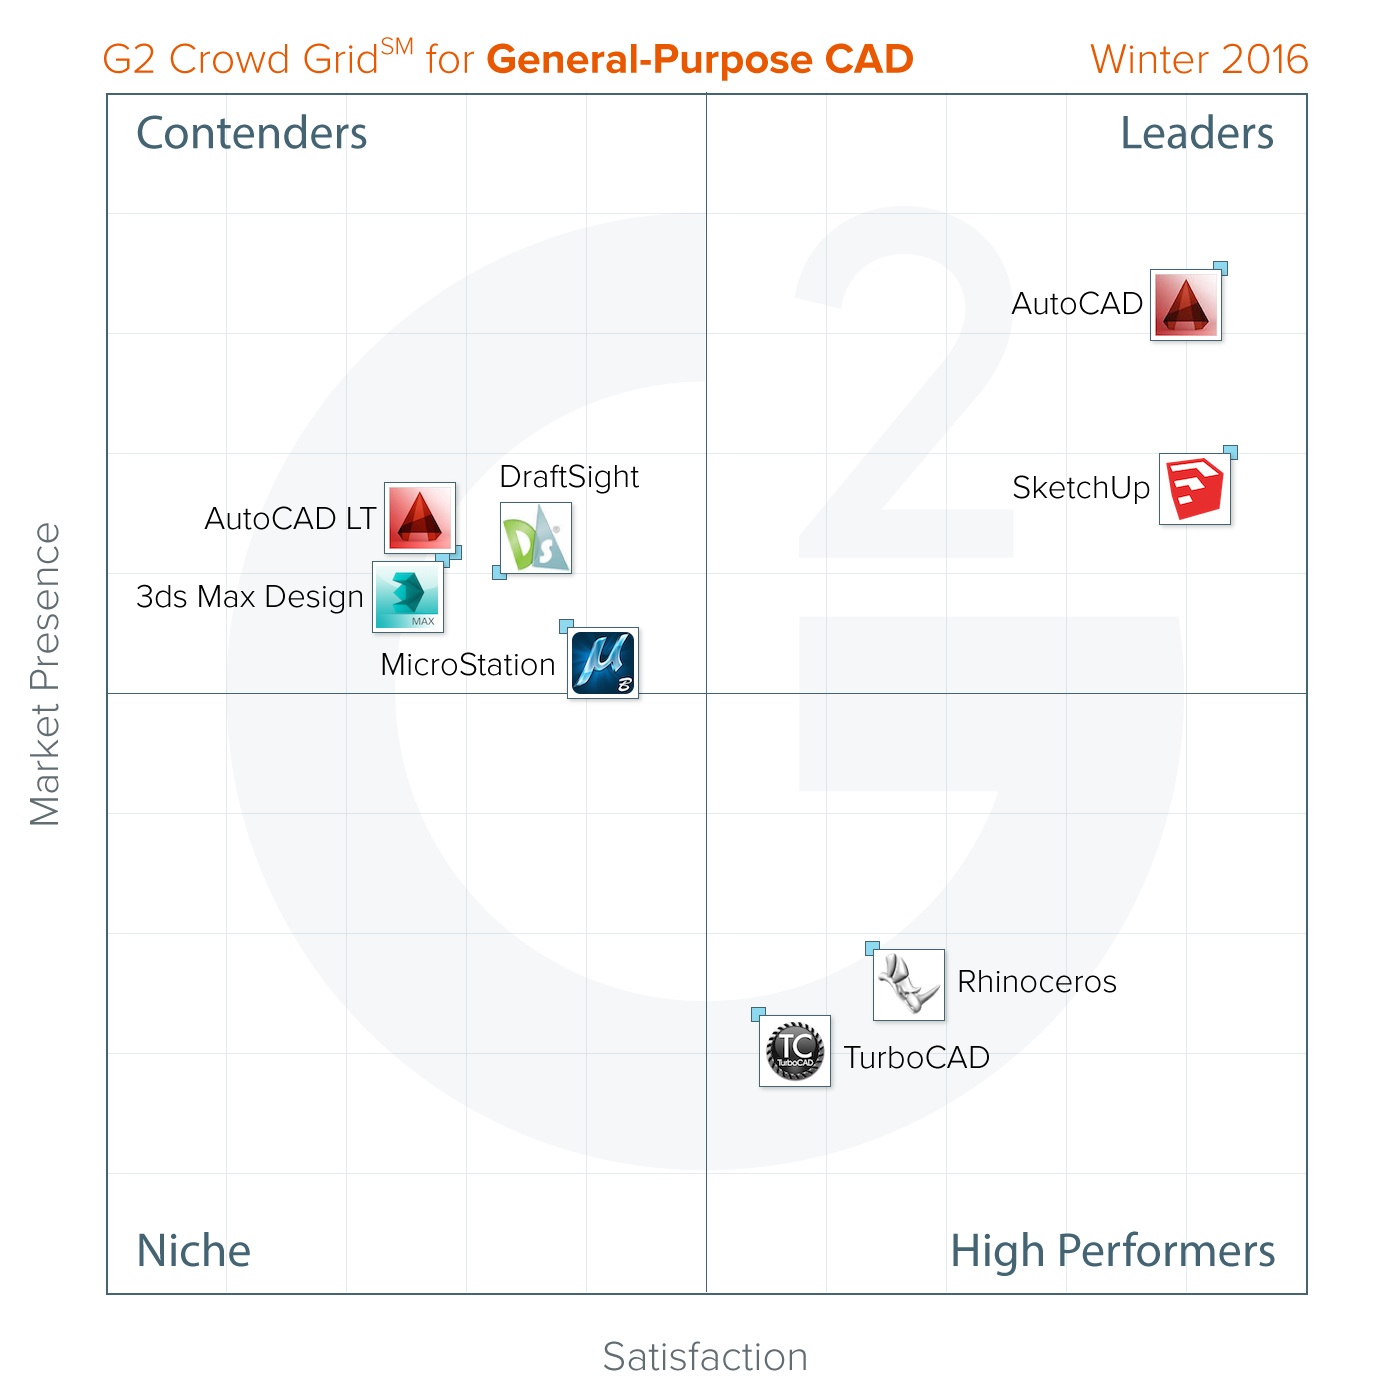 the best generalpurpose cad software according to g2